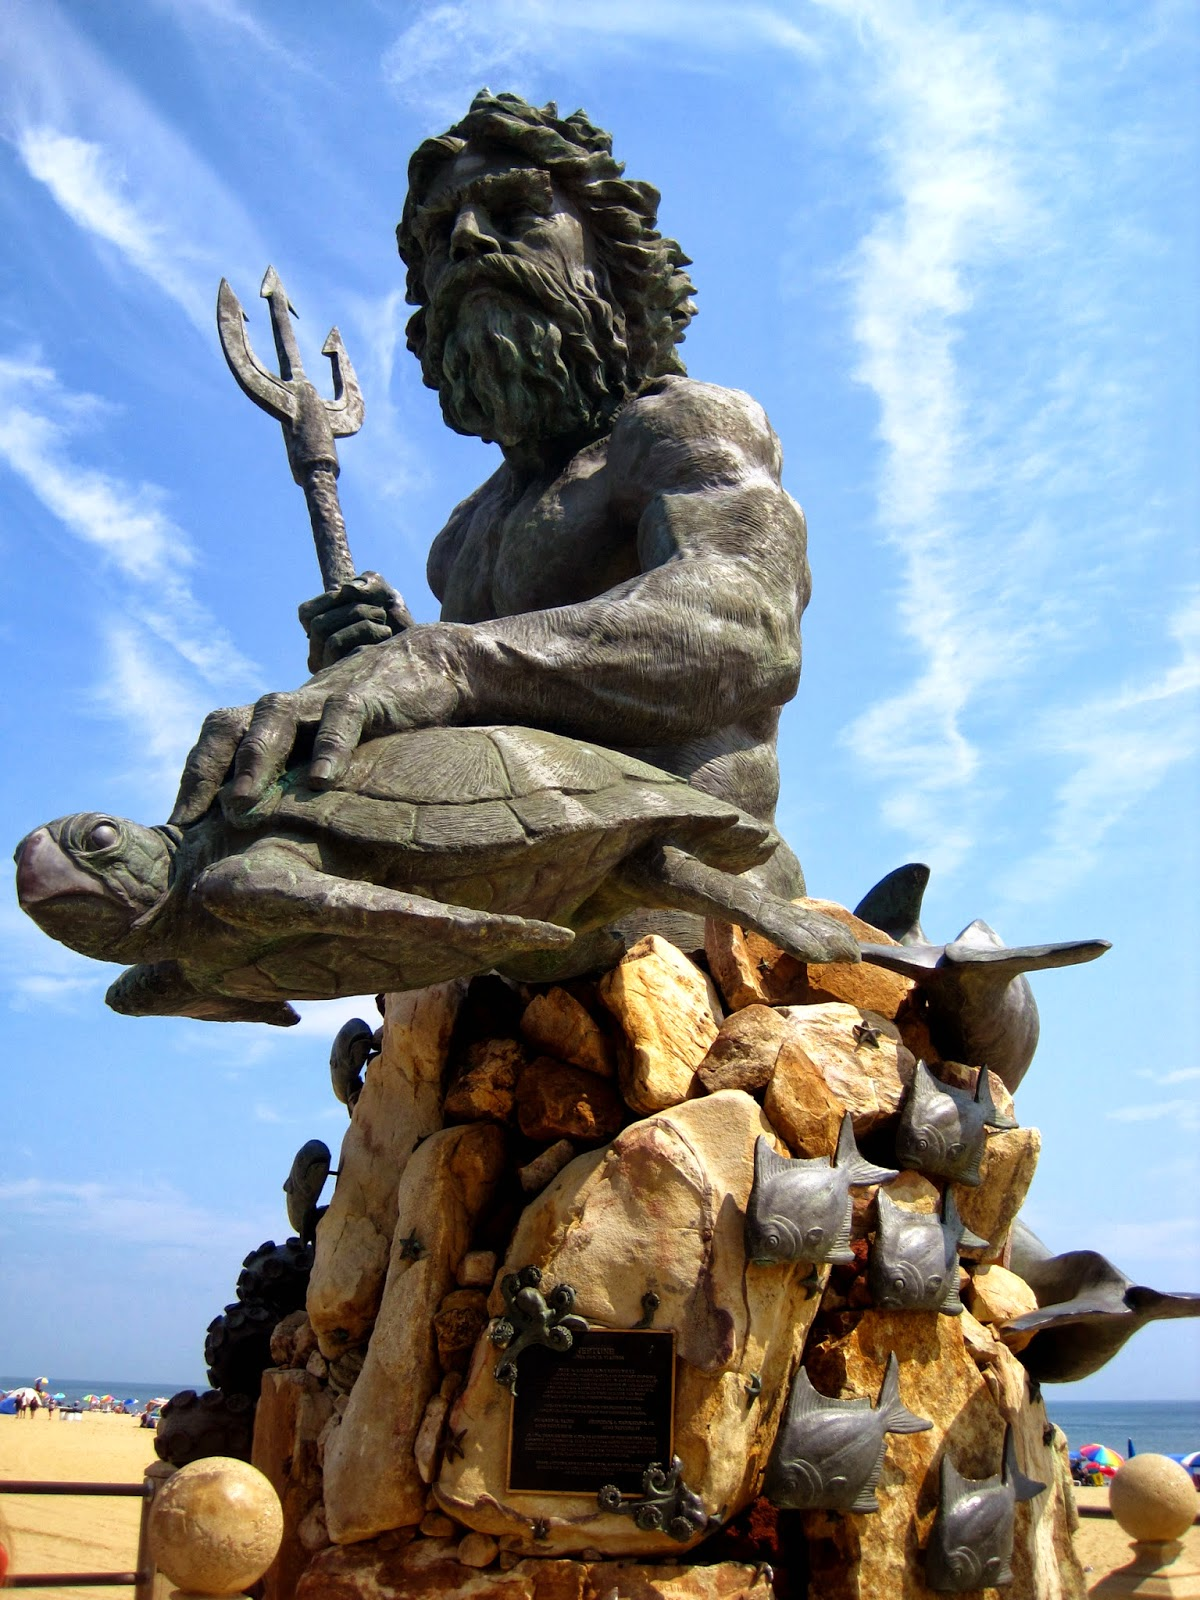 images of poseidon greek mythology under construction